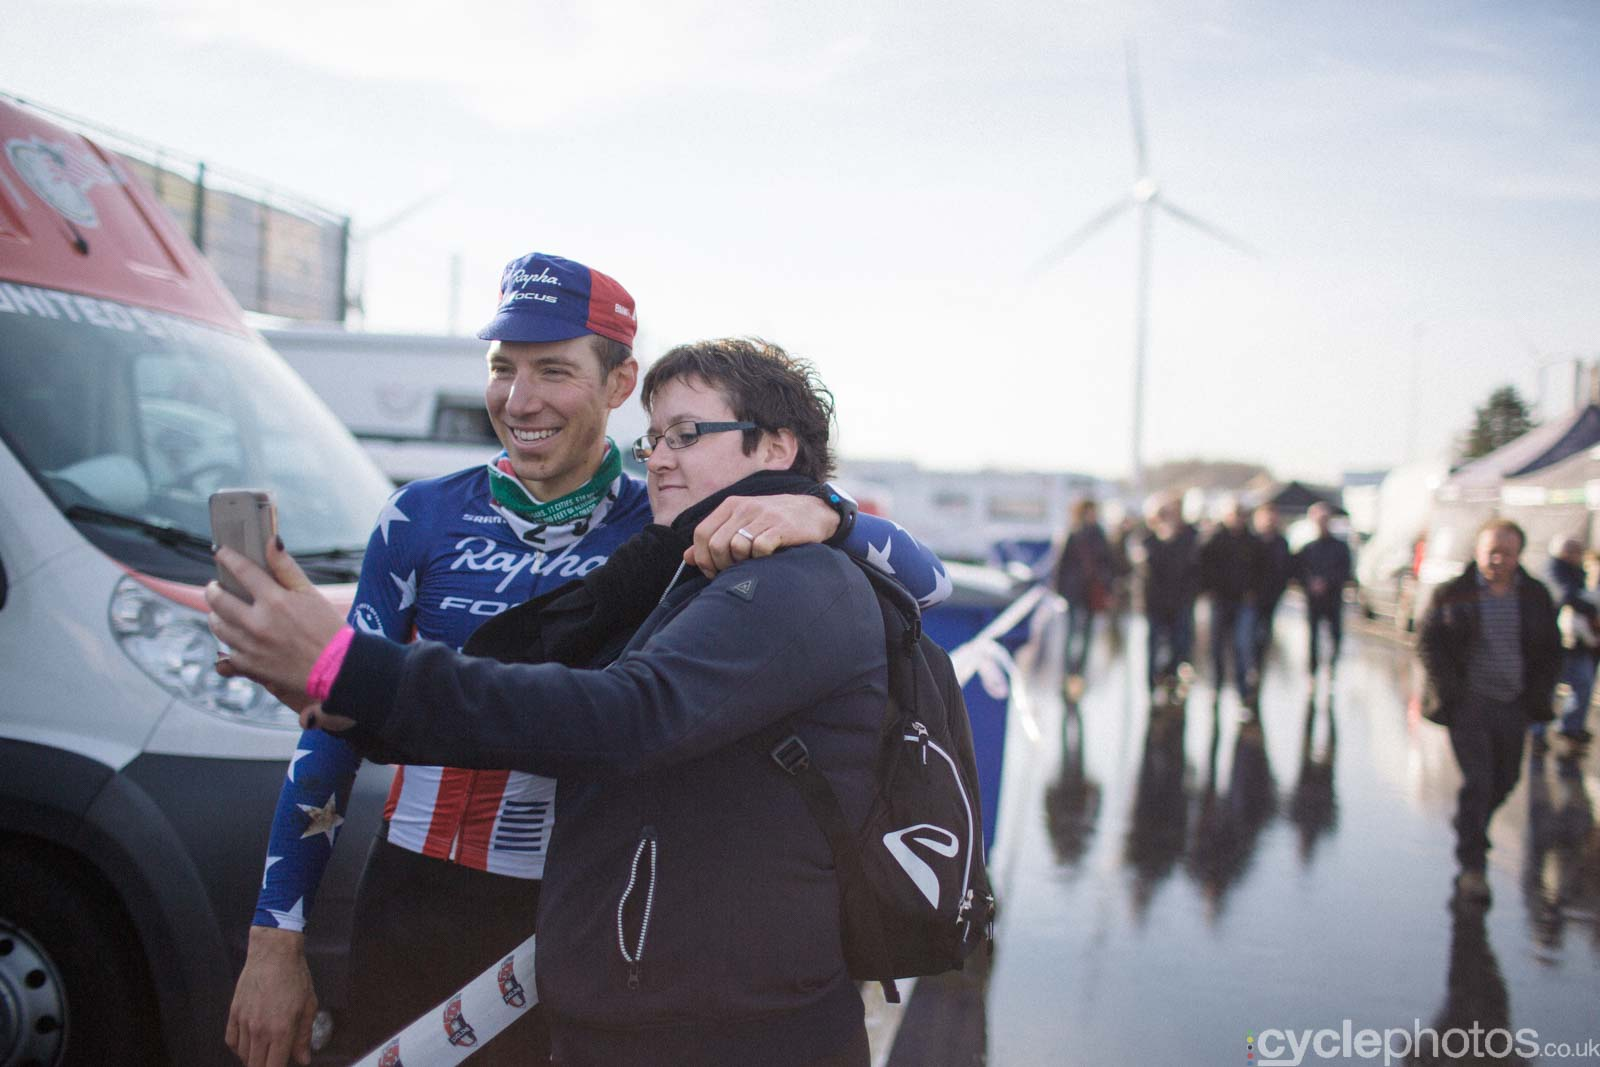 2015-cyclephotos-cyclocross-zolder-131434